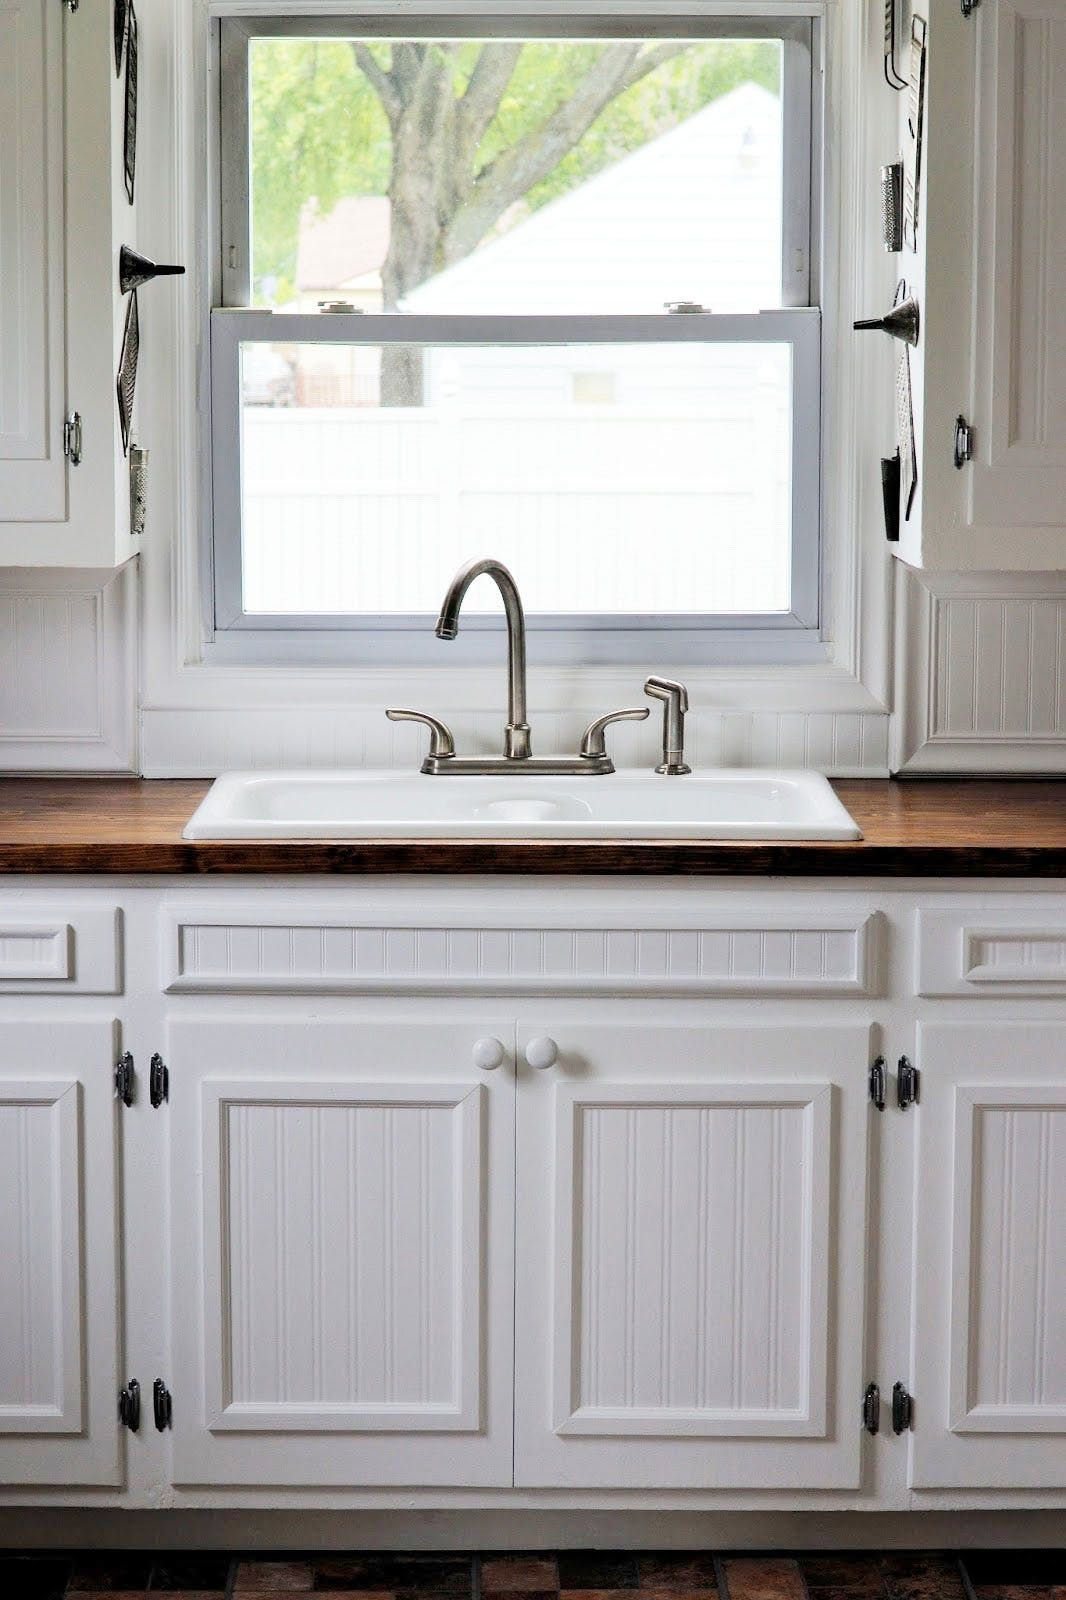 Decorative Details Adding Character To Your Home With Textured Wallpaper In 2020 Grand Kitchen Beadboard Wallpaper Kitchen Cabinet Doors